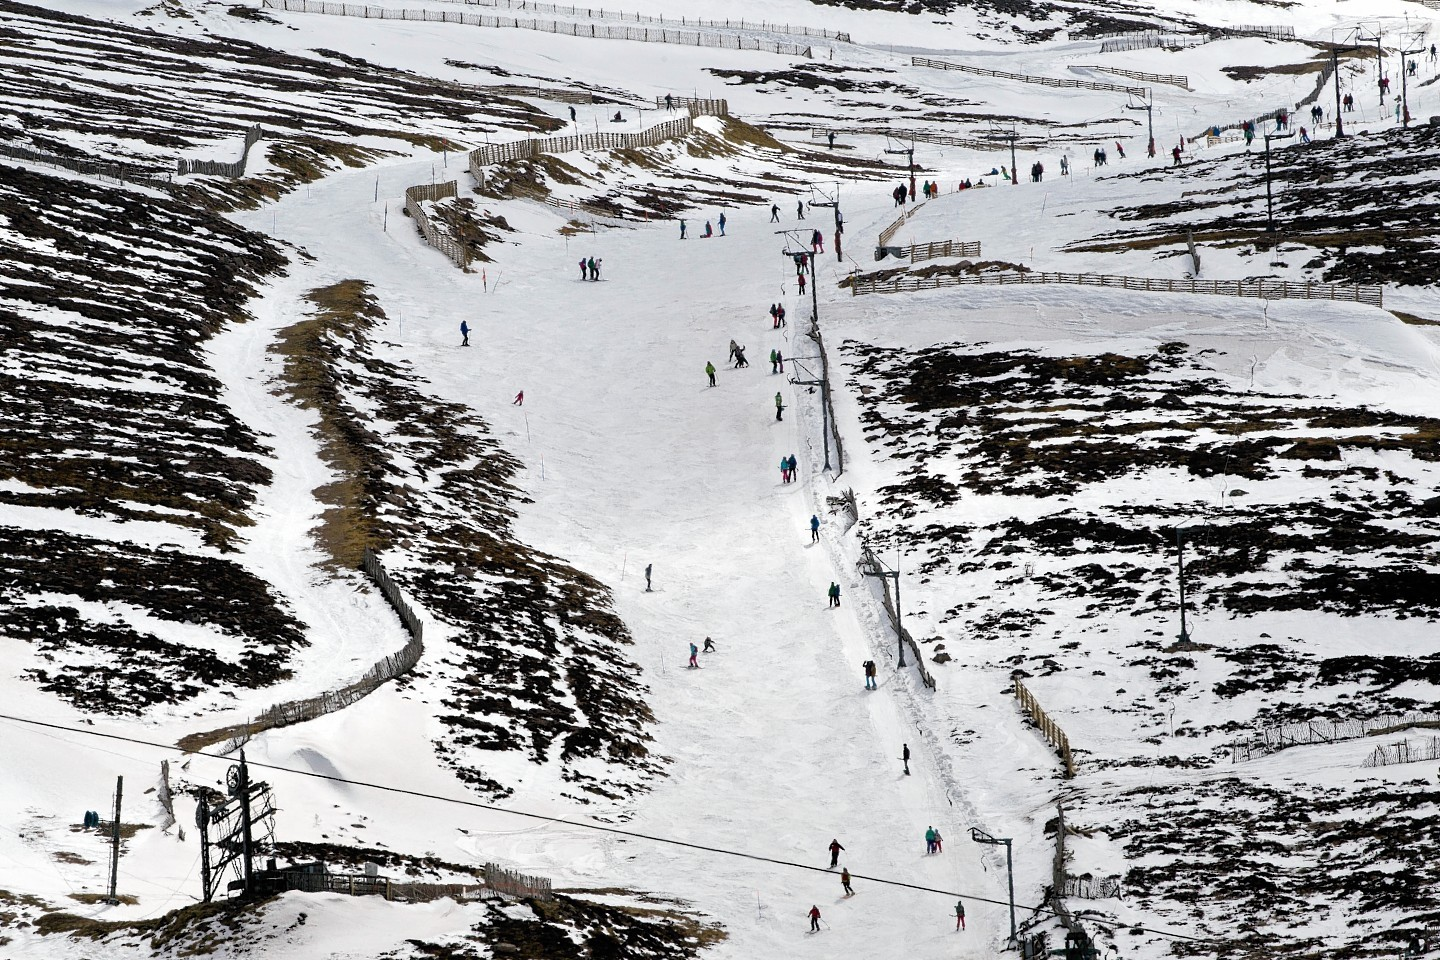 The plans would bring new chairlifts, a mountain coaster and a zipline tour to Cairngorm Mountain.